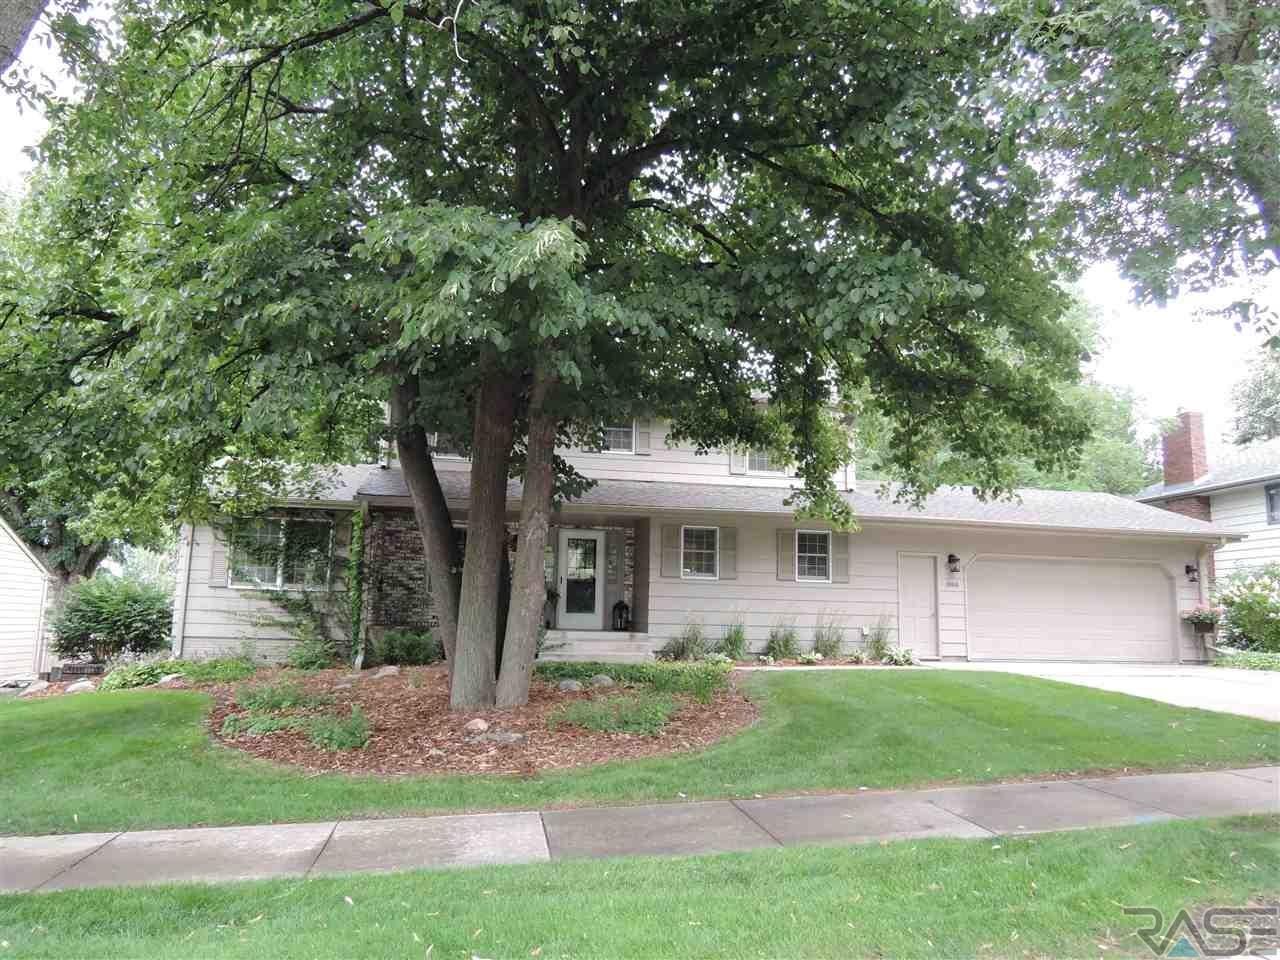 3908 S Lewis Ave, Sioux Falls, SD 57103